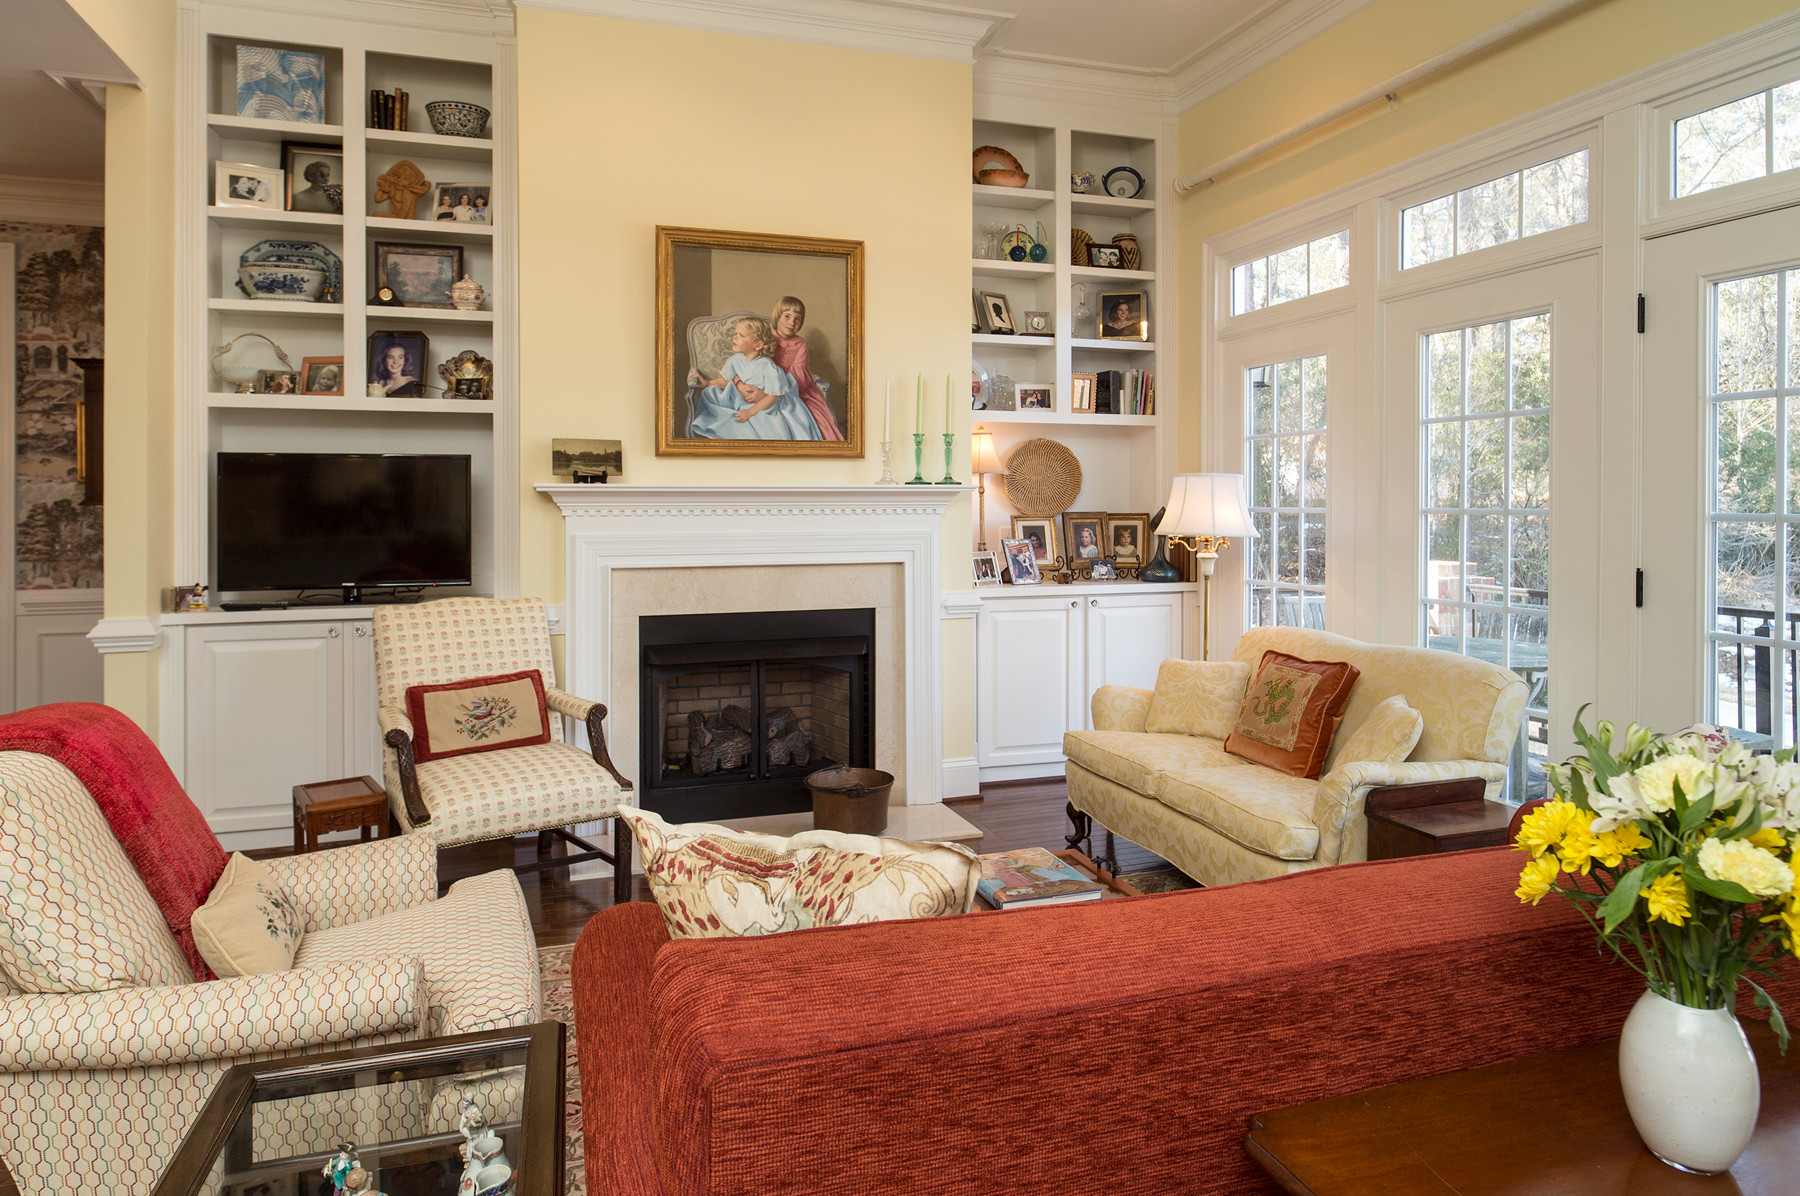 75 Beautiful Traditional Living Room With A Tv Stand Pictures Ideas July 2021 Houzz